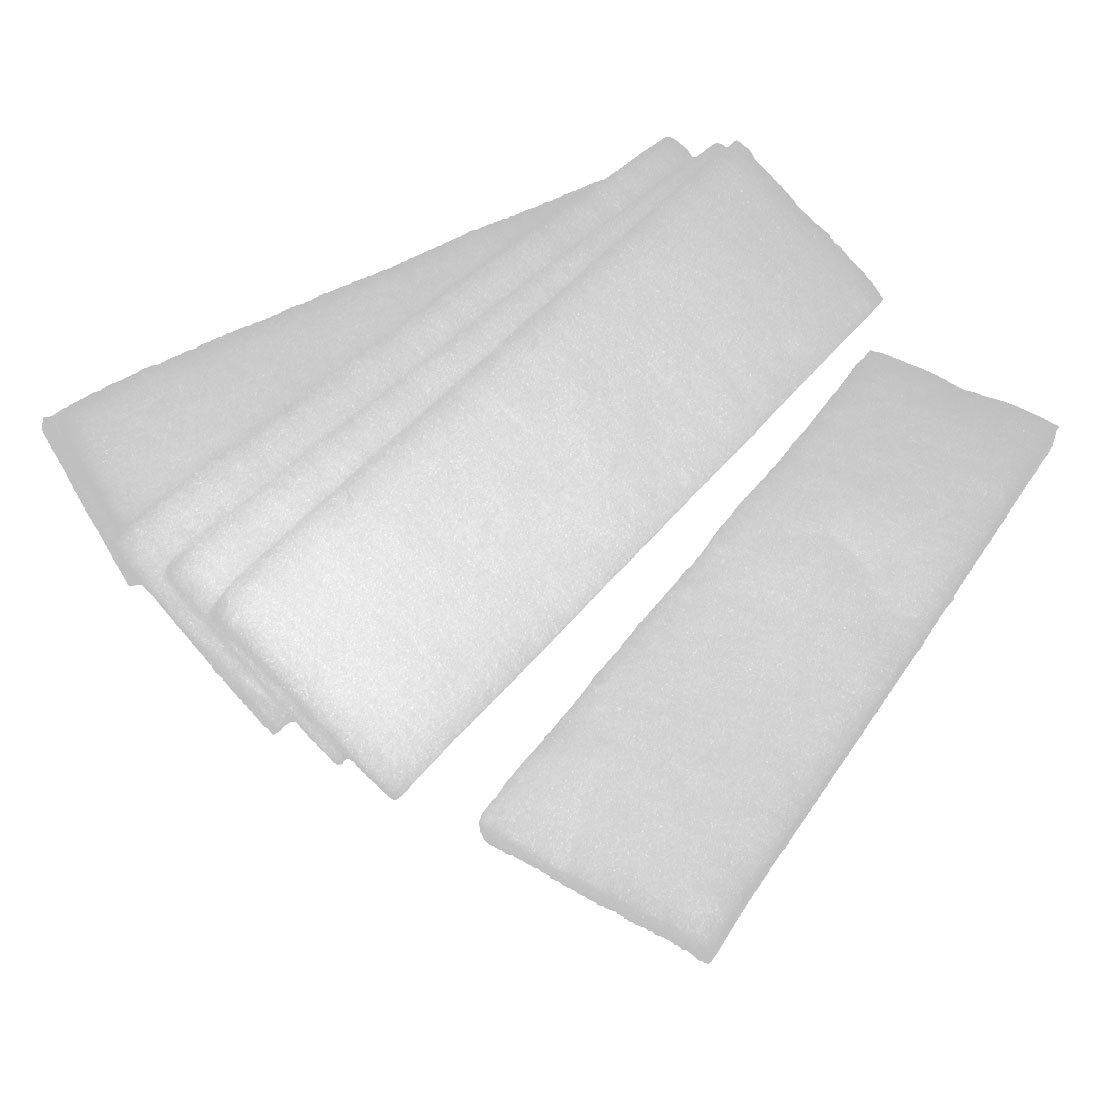 Aquarium Biochemical Filter Fiber Cotton for Fish Tank White